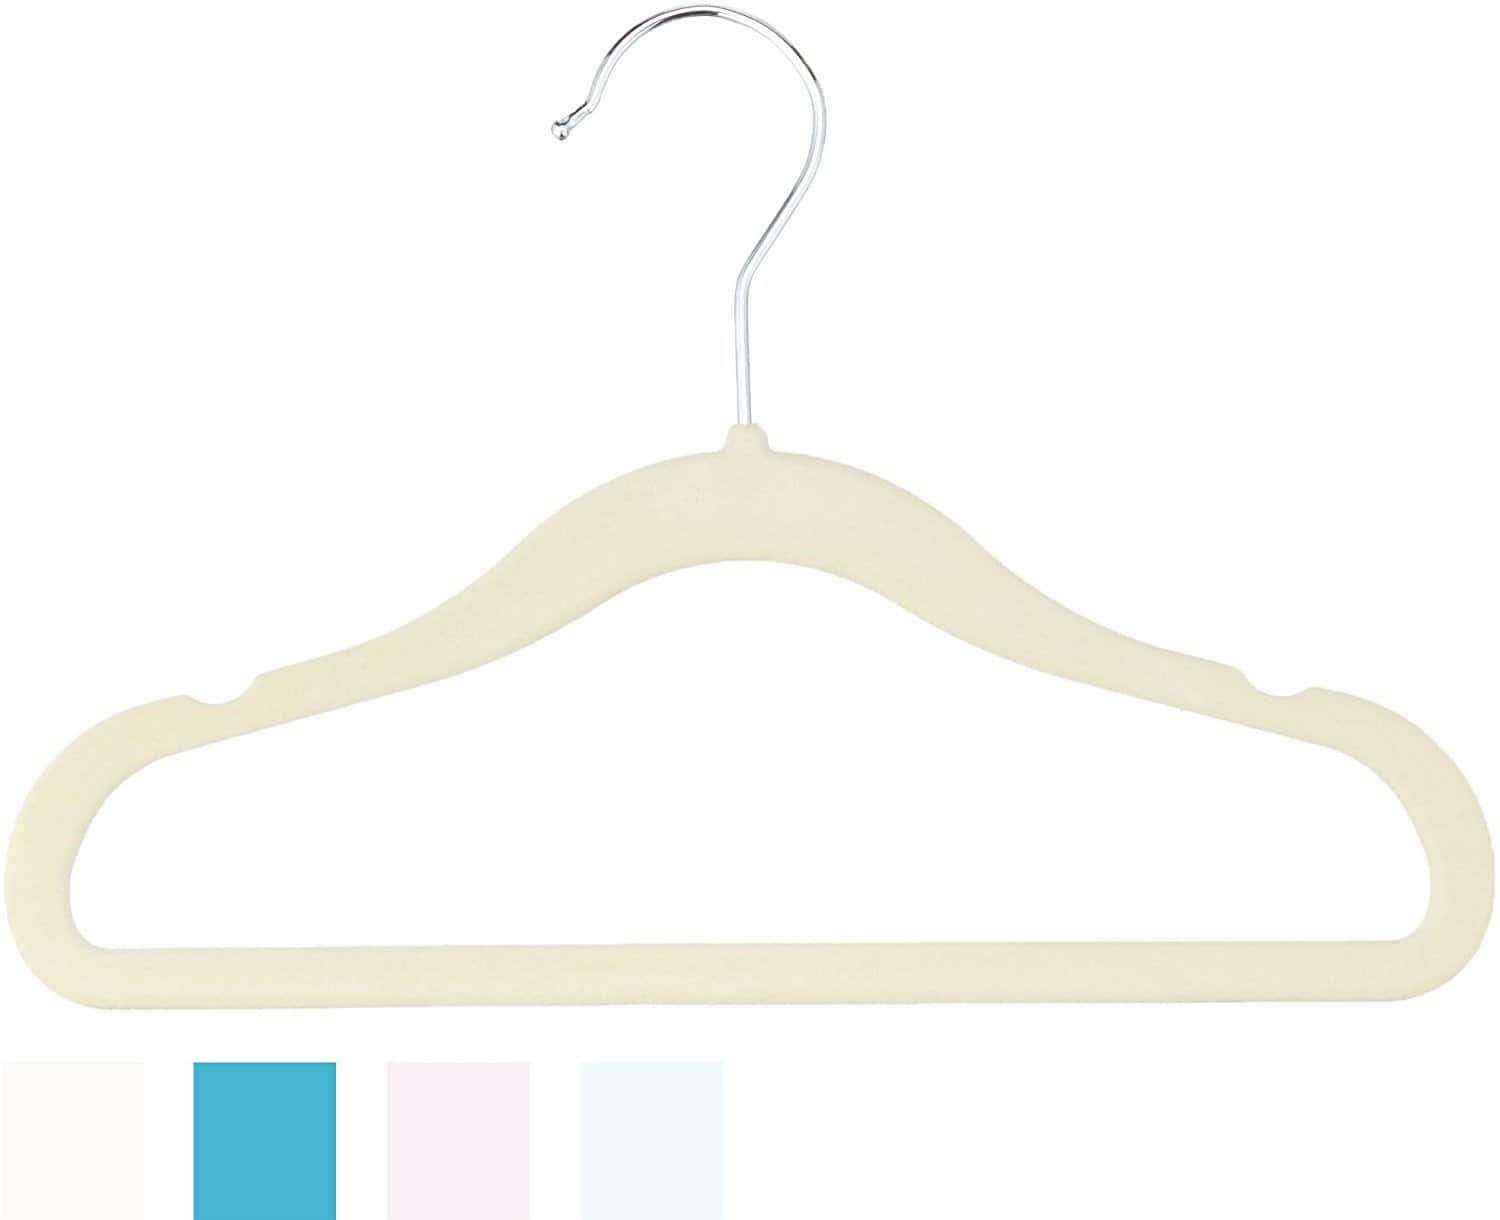 AmazonBasics Kids Velvet Hangers - 30-Pack, Beige $6.98 add on item@amazon